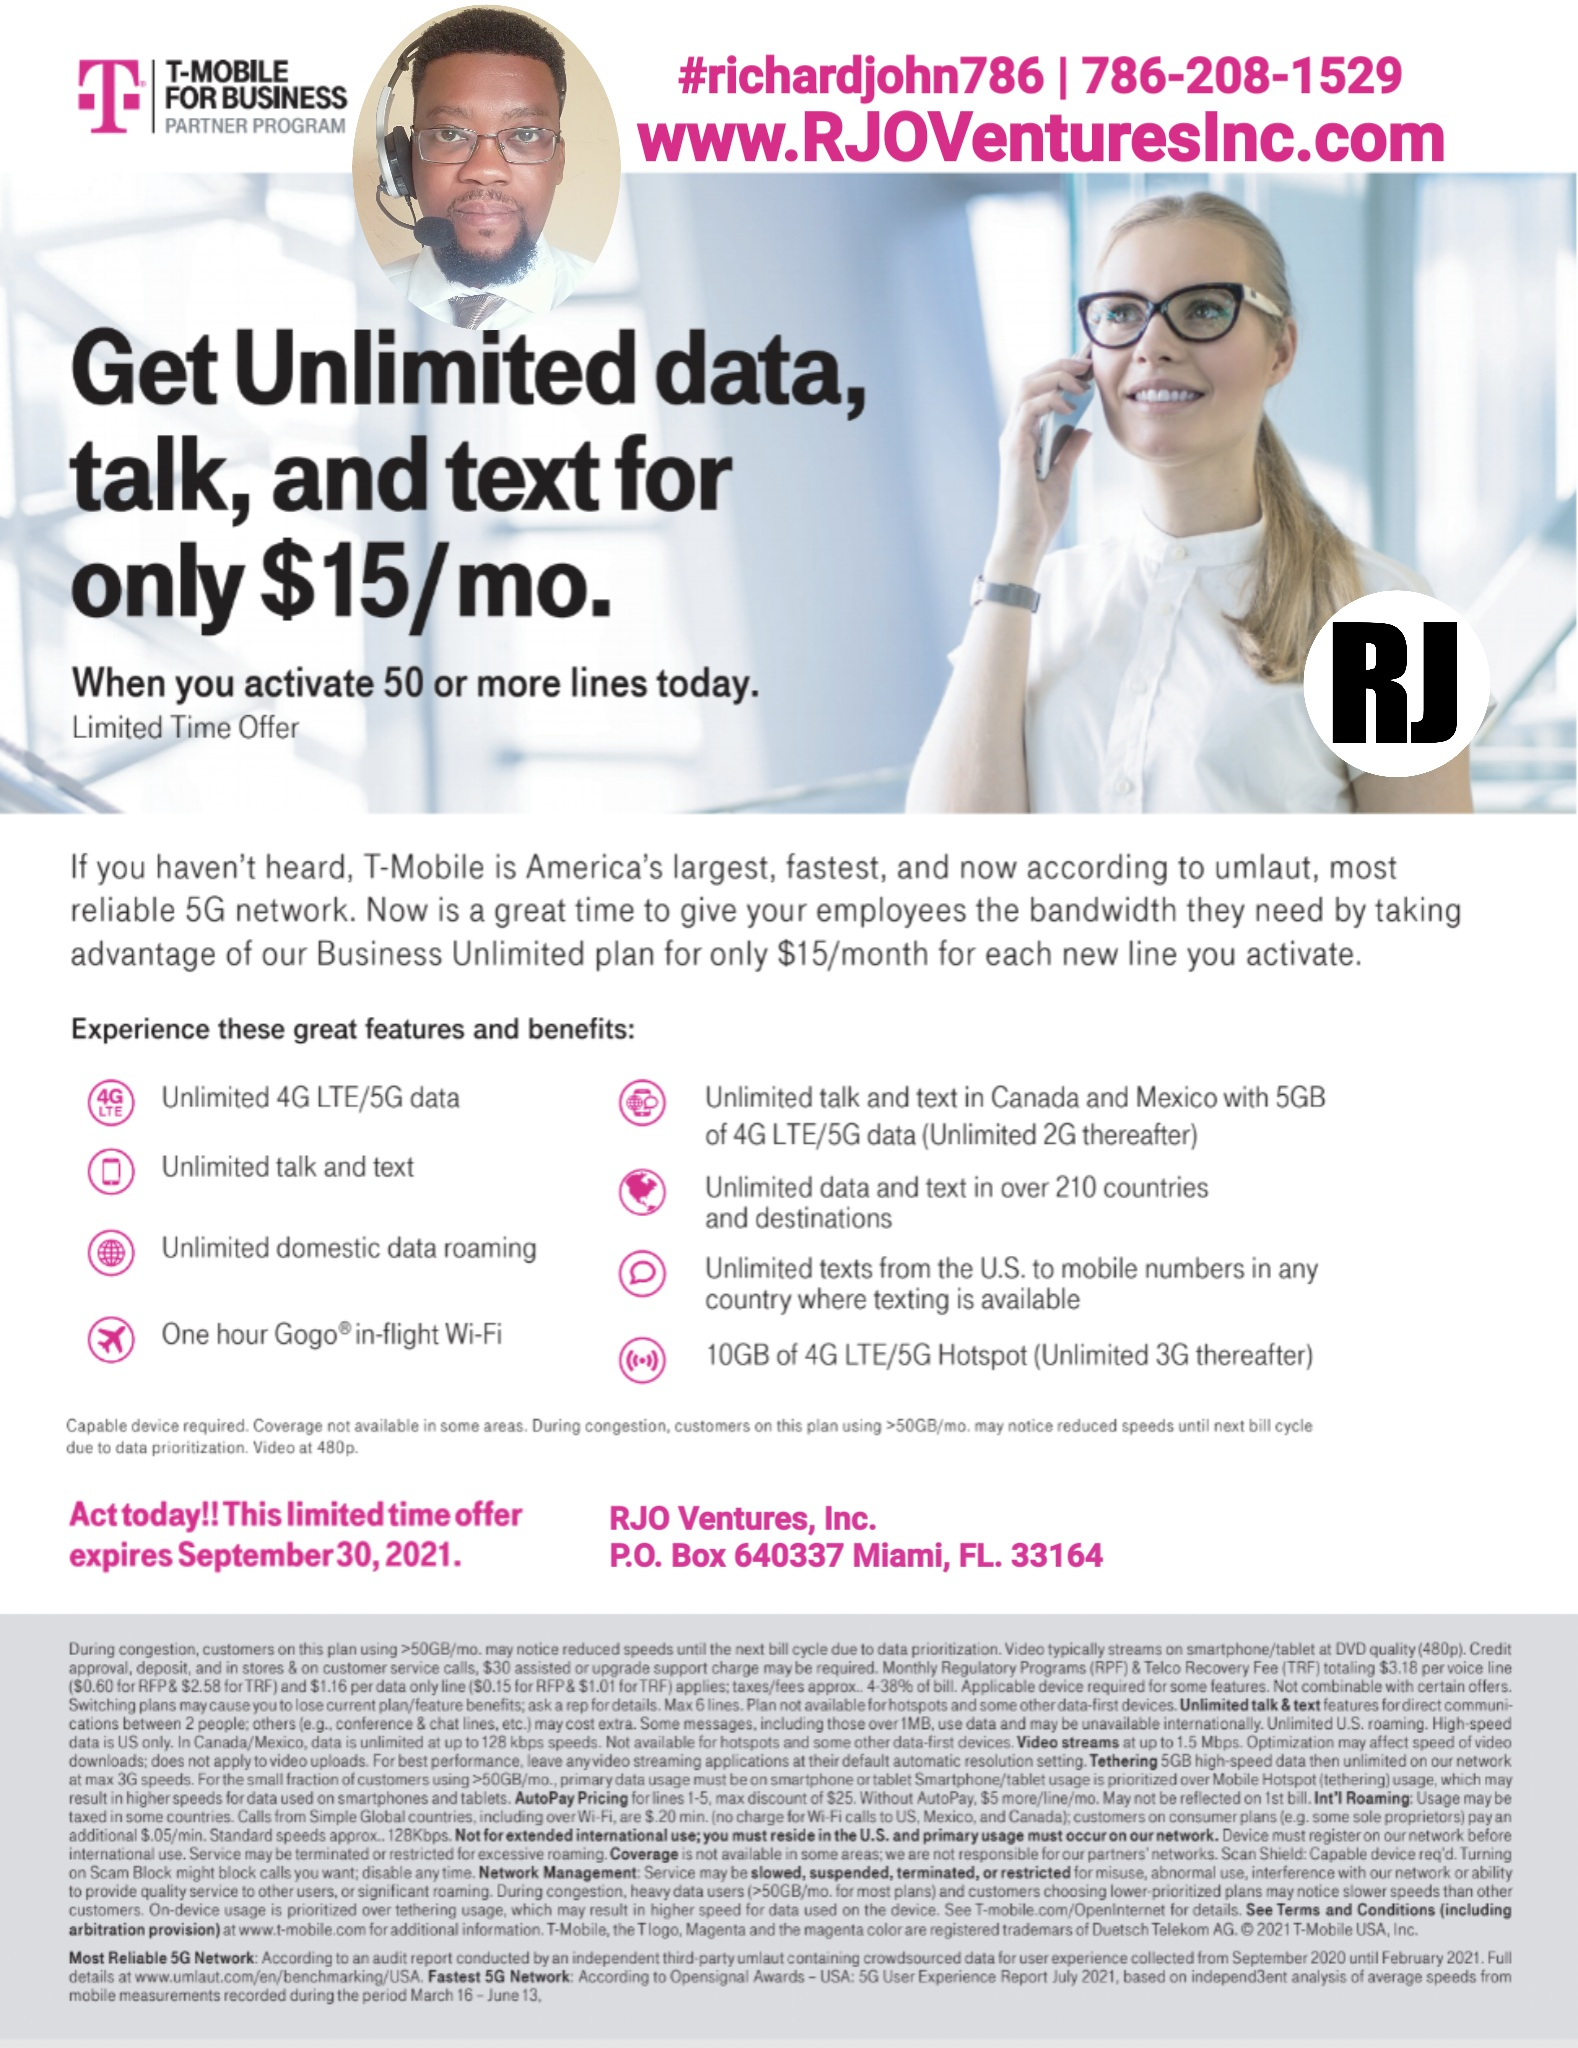 T-Mobile: Get unlimited data, talk and text for only $15 per month. [RJOVenturesInc.com]